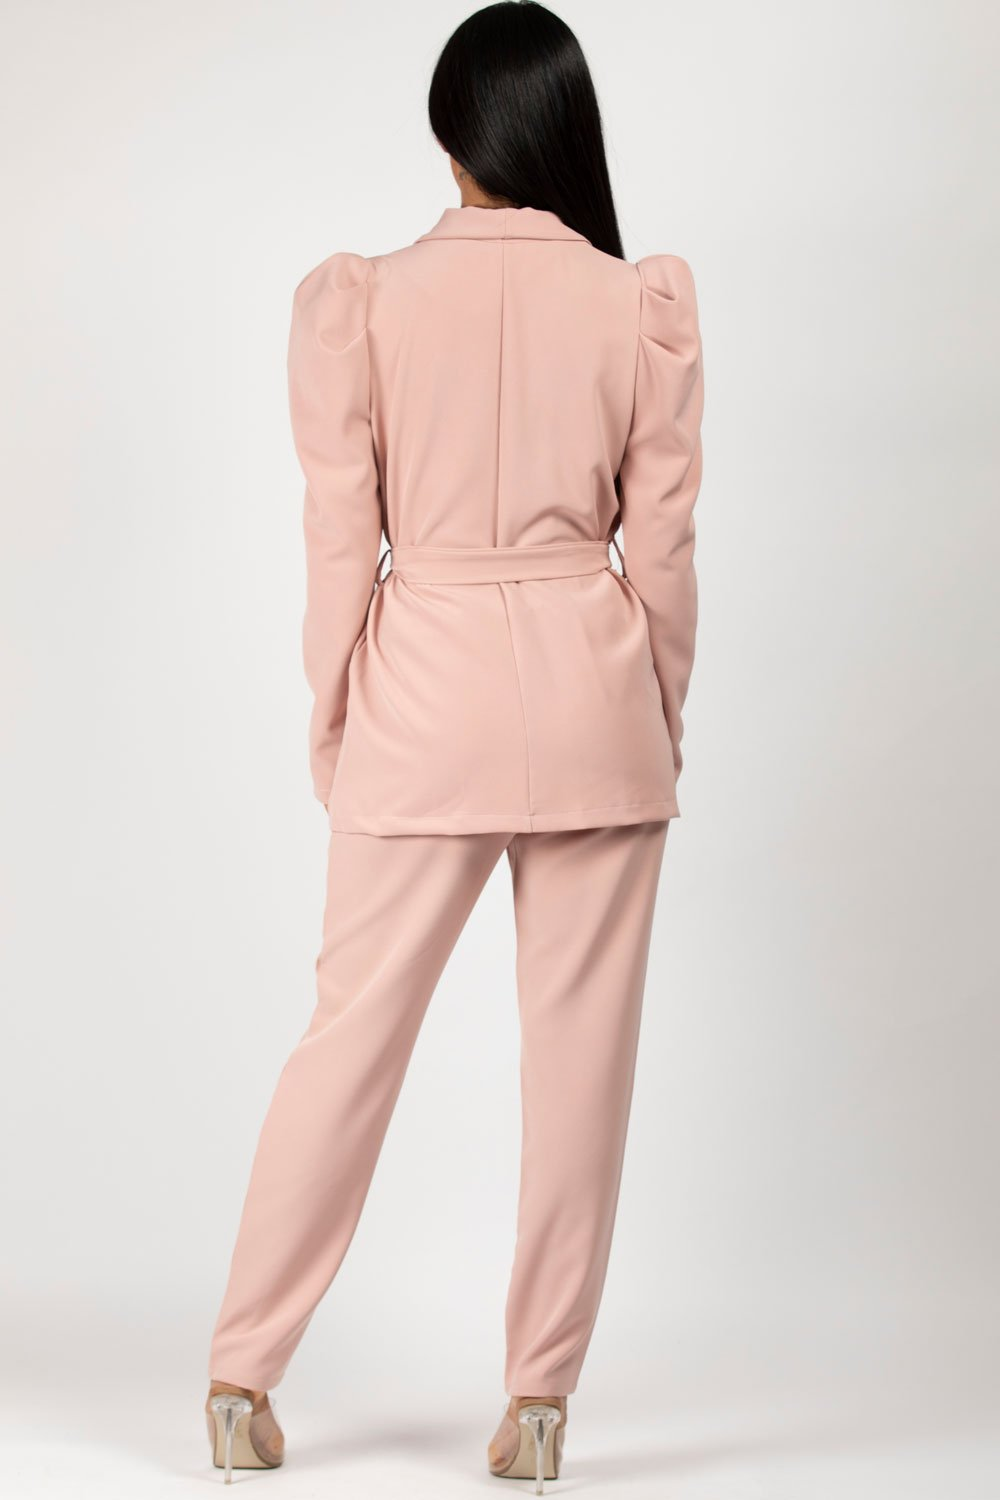 pink blazer and trousers set styledup fashion